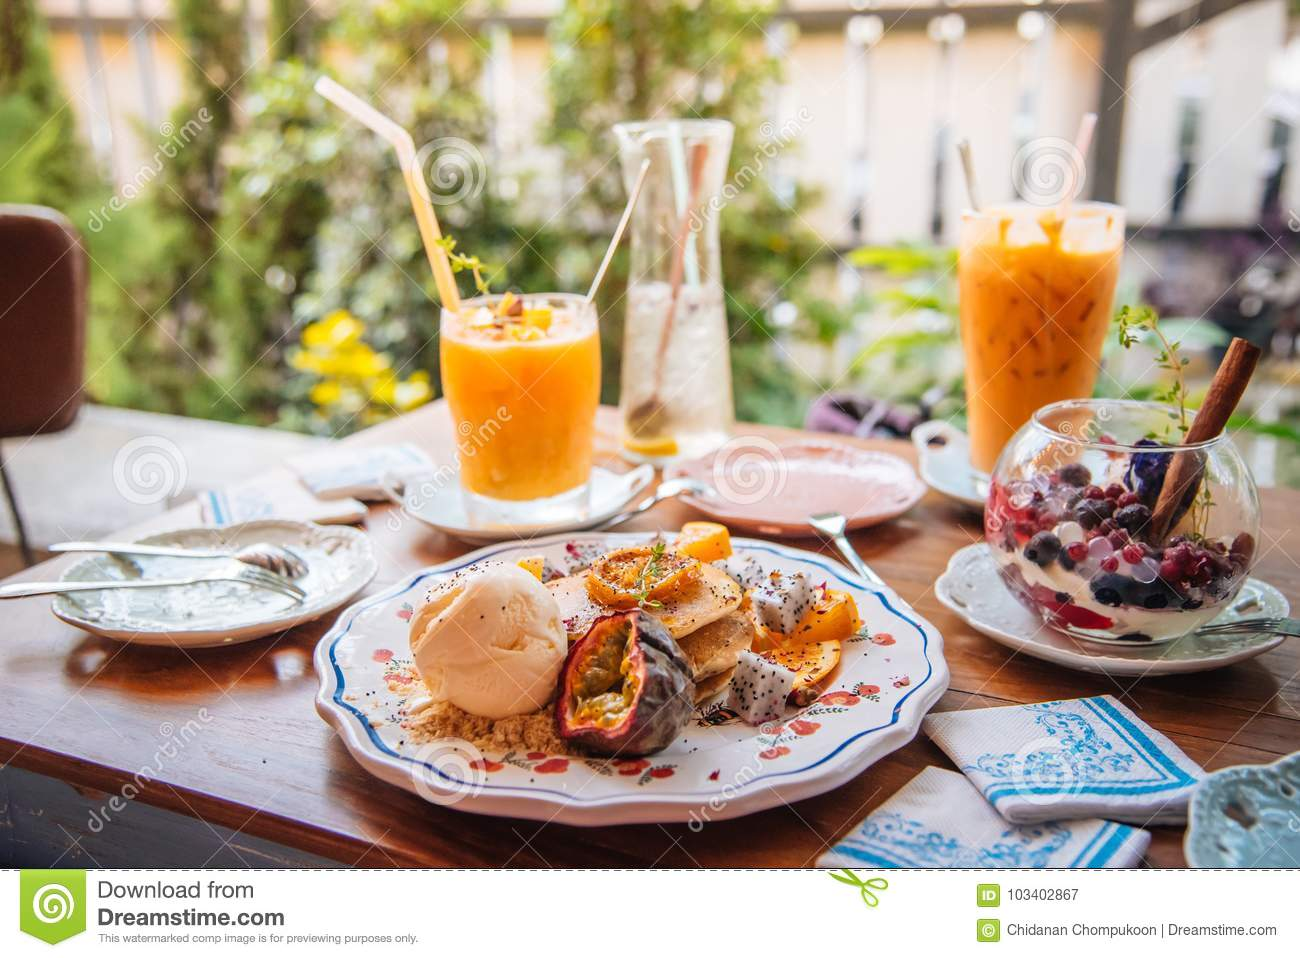 Sweet Pancakes with honey and vanilla ice cream Fruit with Orange focus on pancake